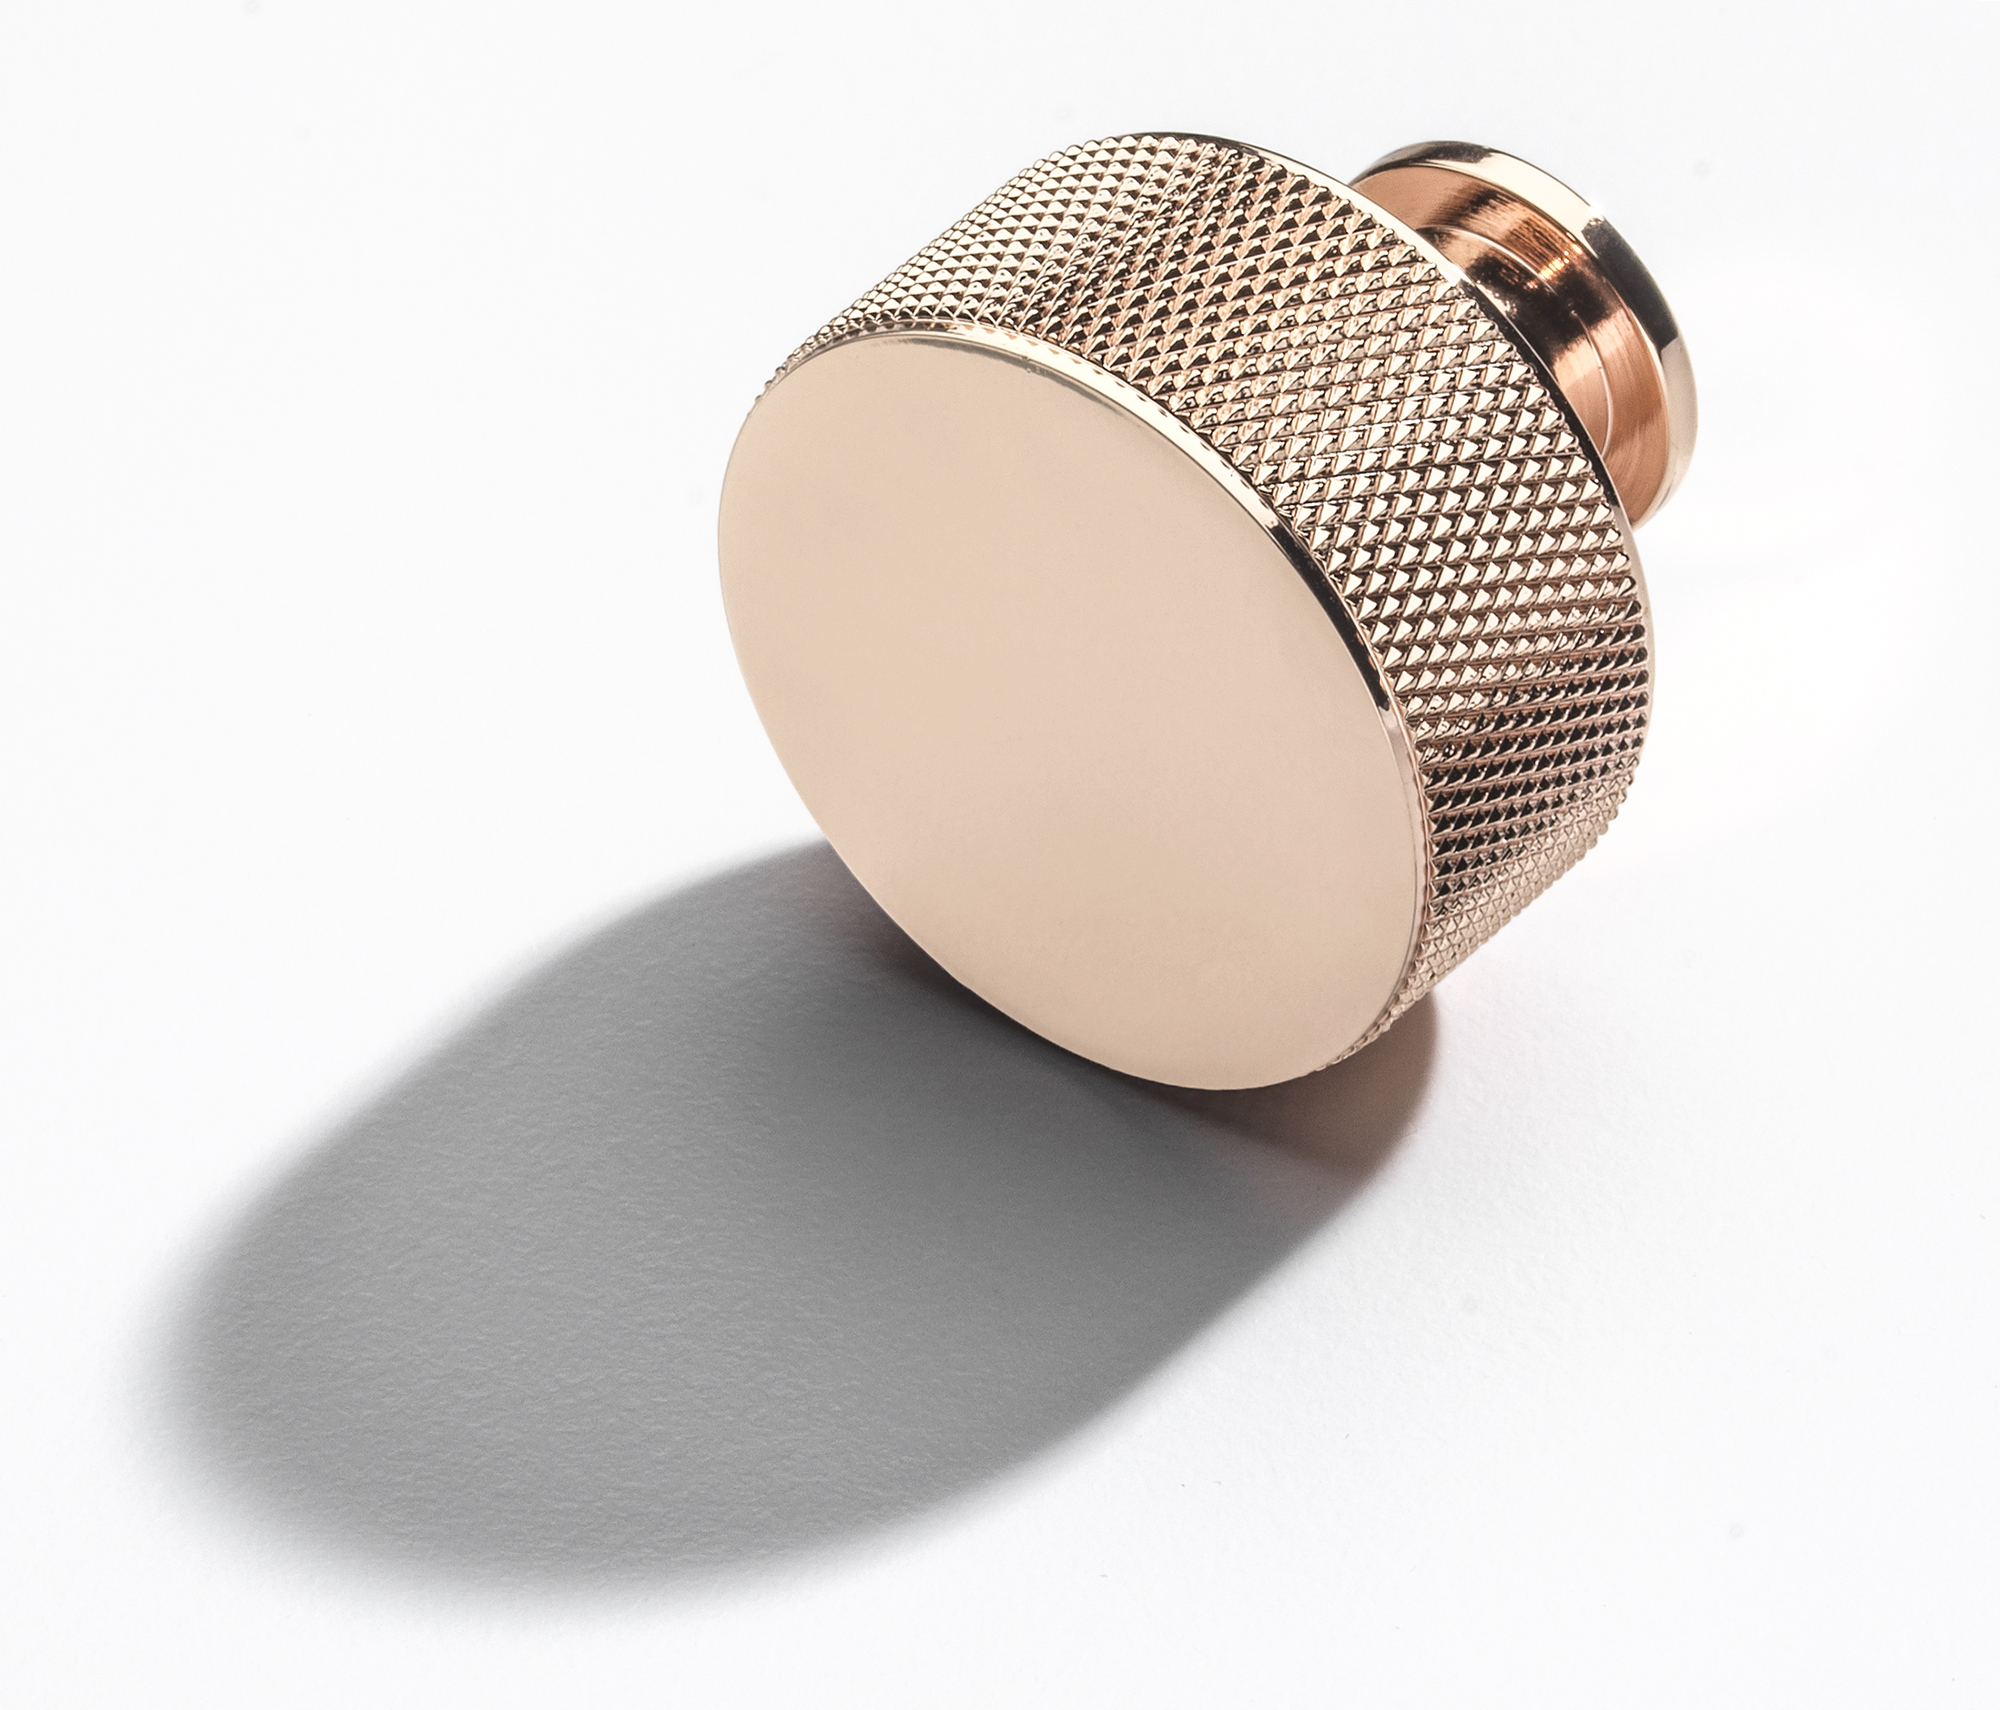 Rose gold beautiful cabinet handle for Croft and Assinder